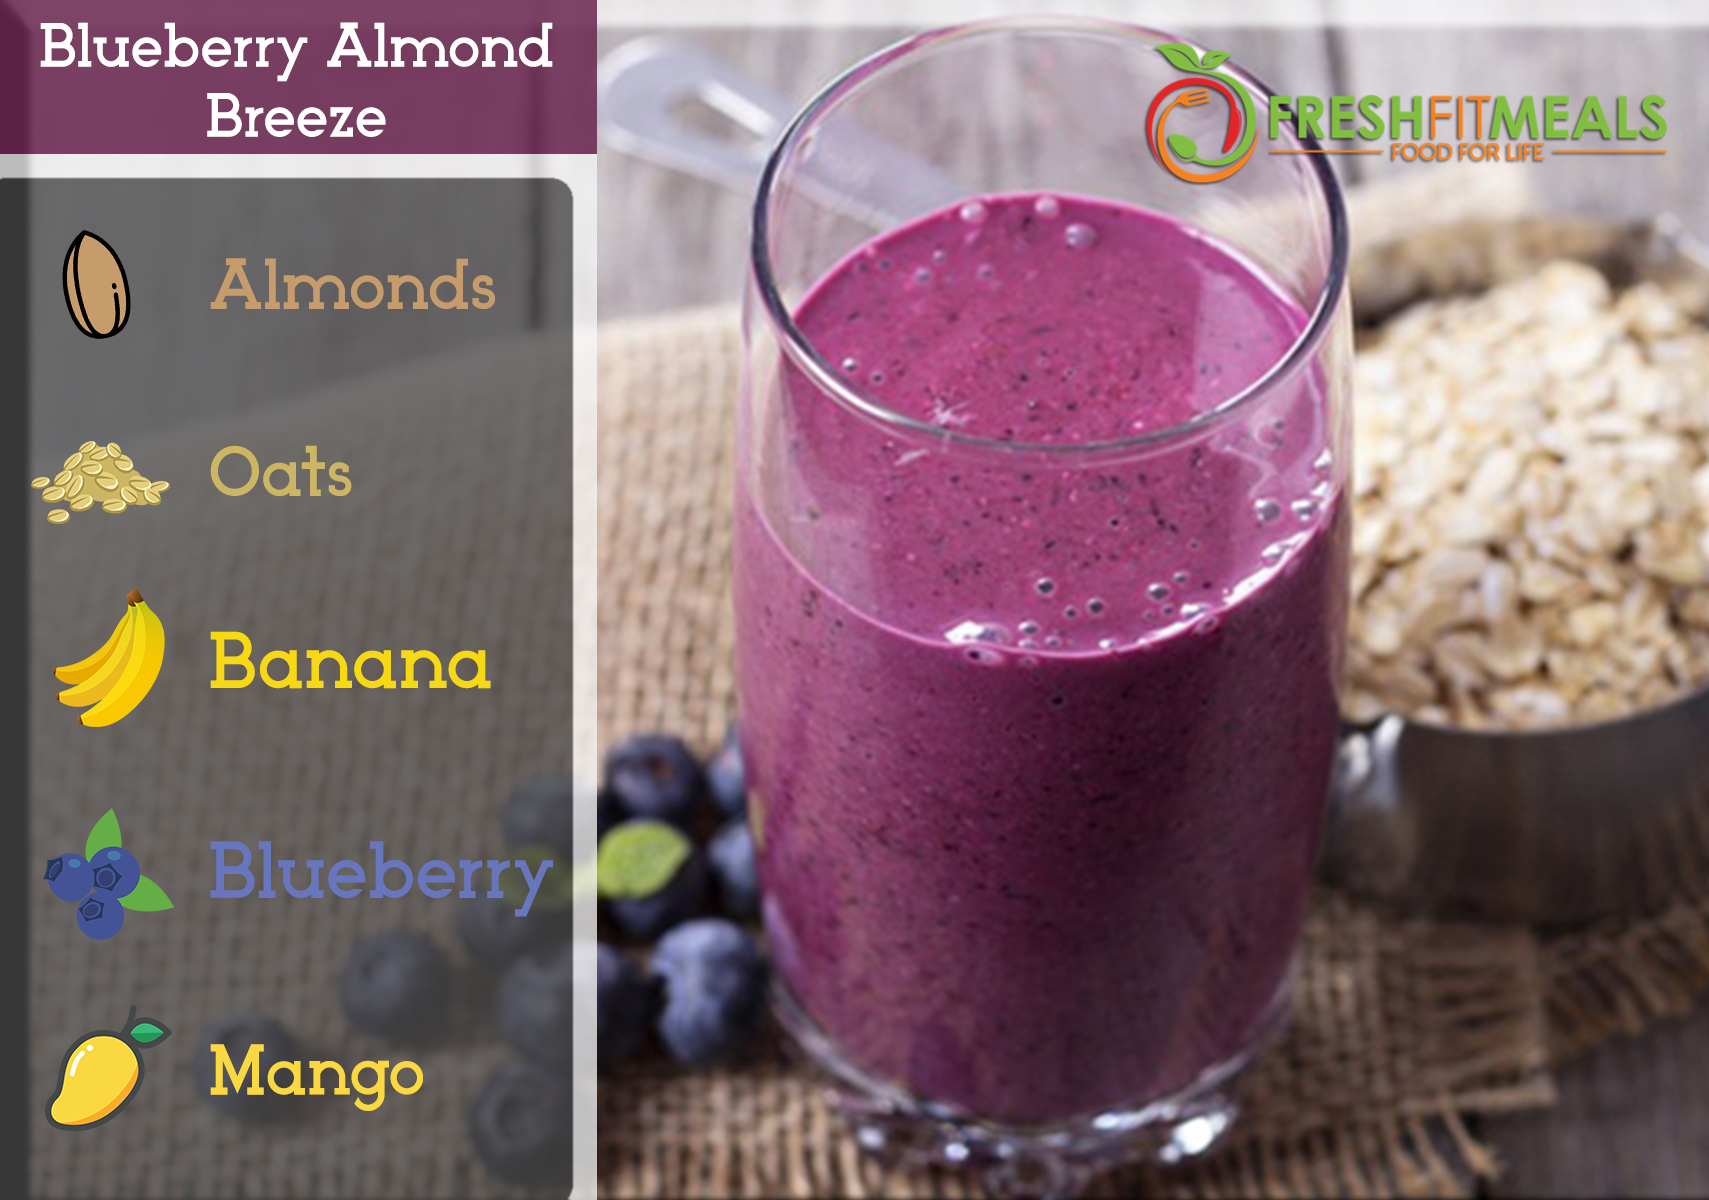 Blueberry, mango, banana, almonds, and oats.